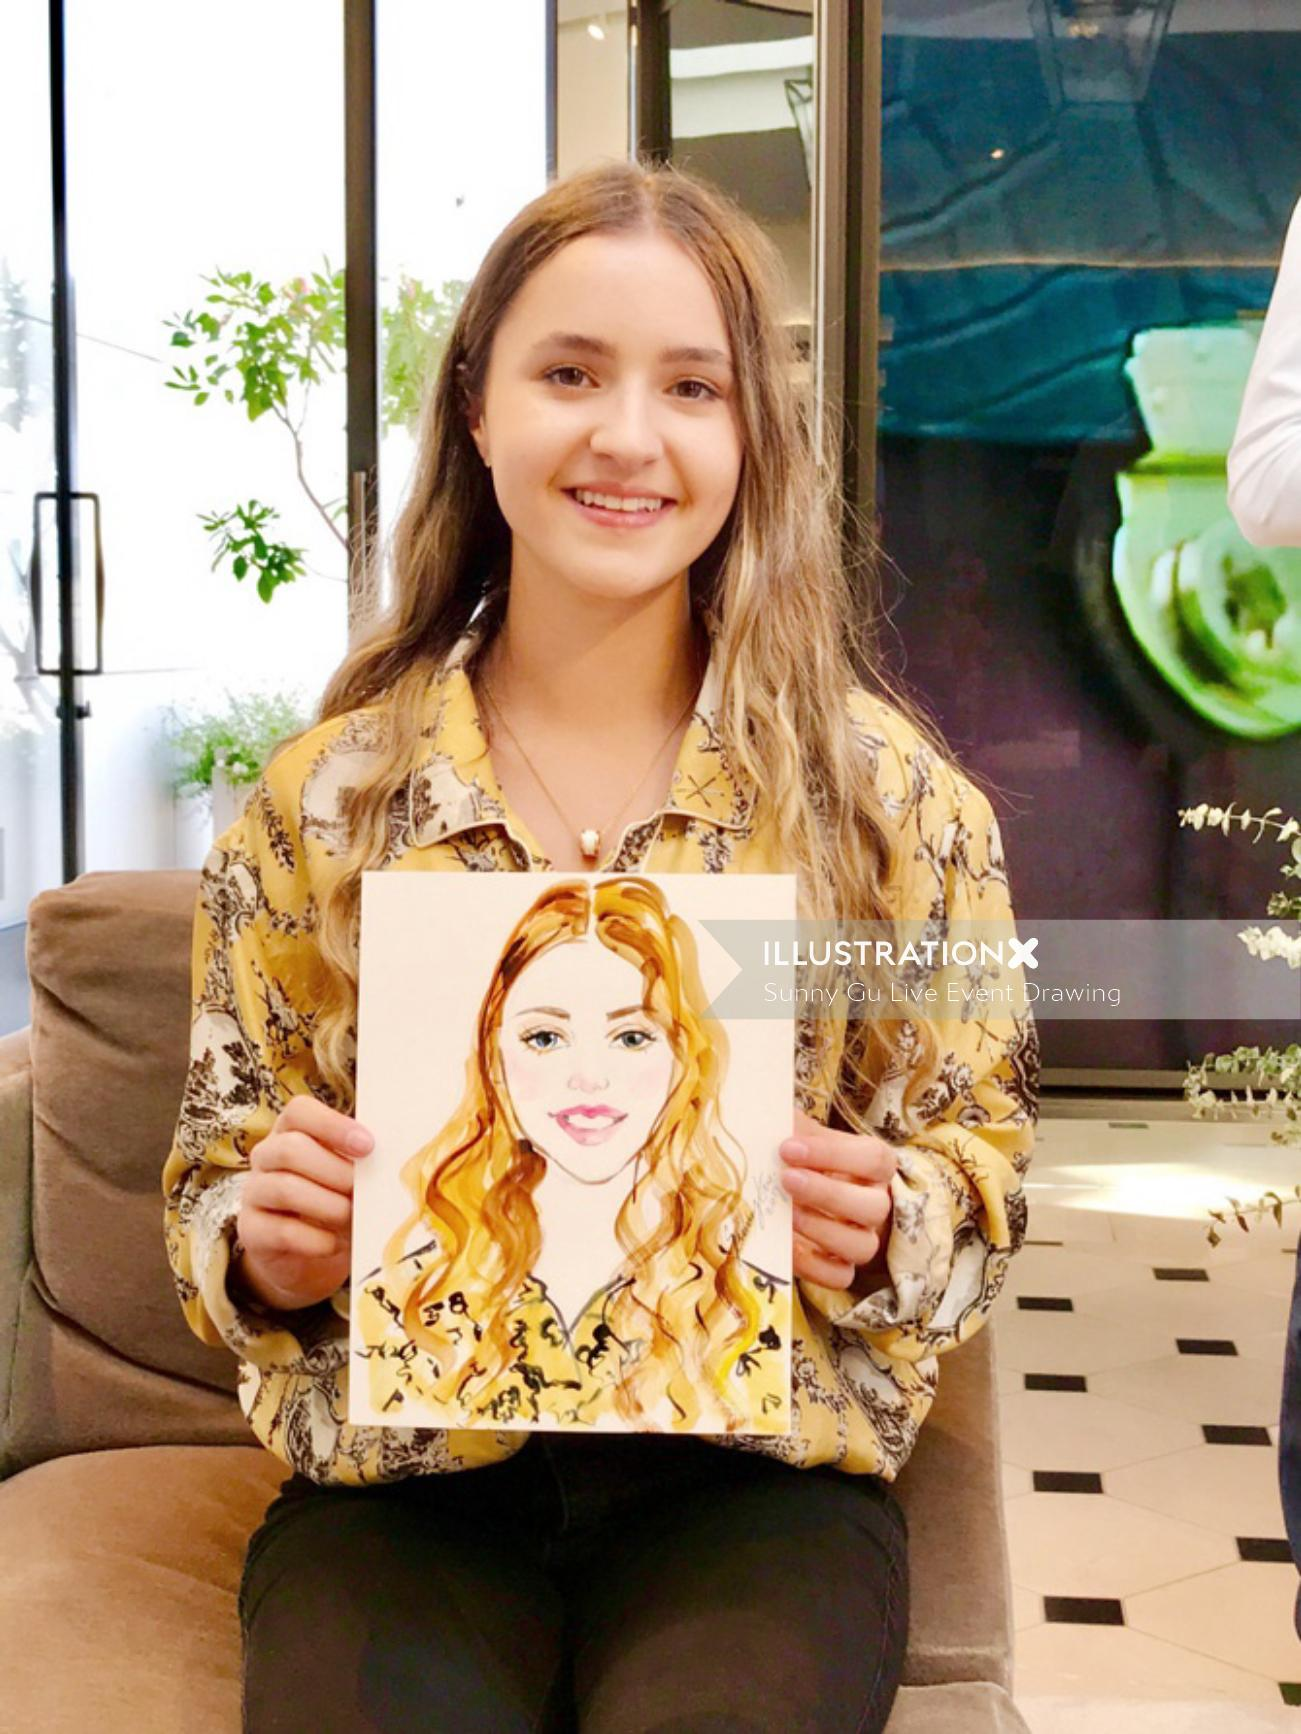 Live event drawing of girl with portrait